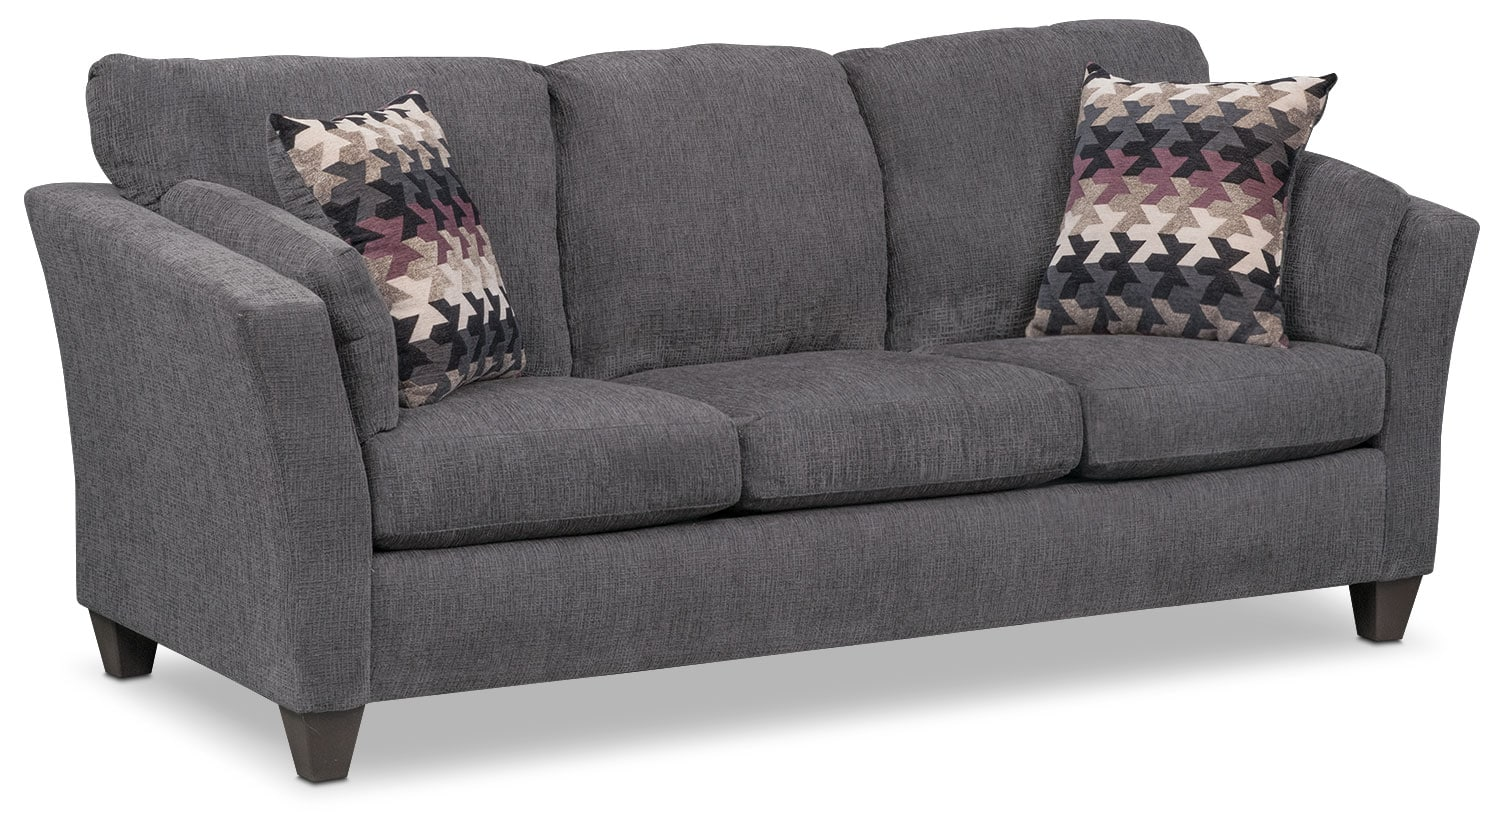 Living Room Furniture - Juno Sofa - Smoke